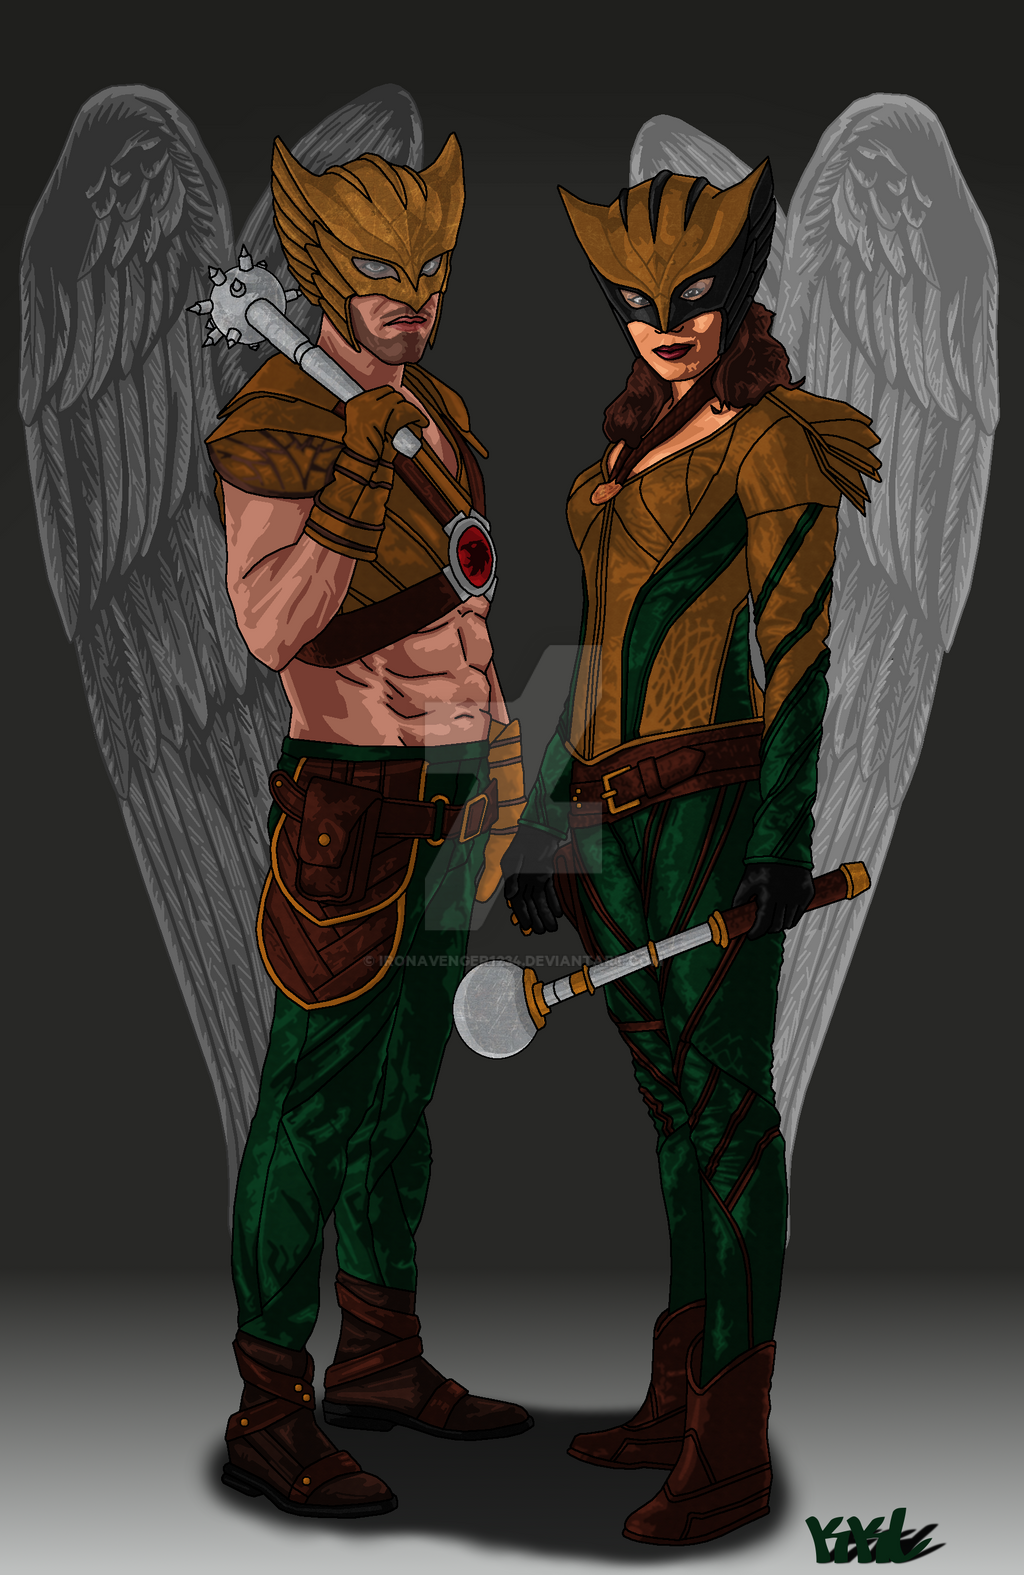 hawkgirl and hawkman meet the parents